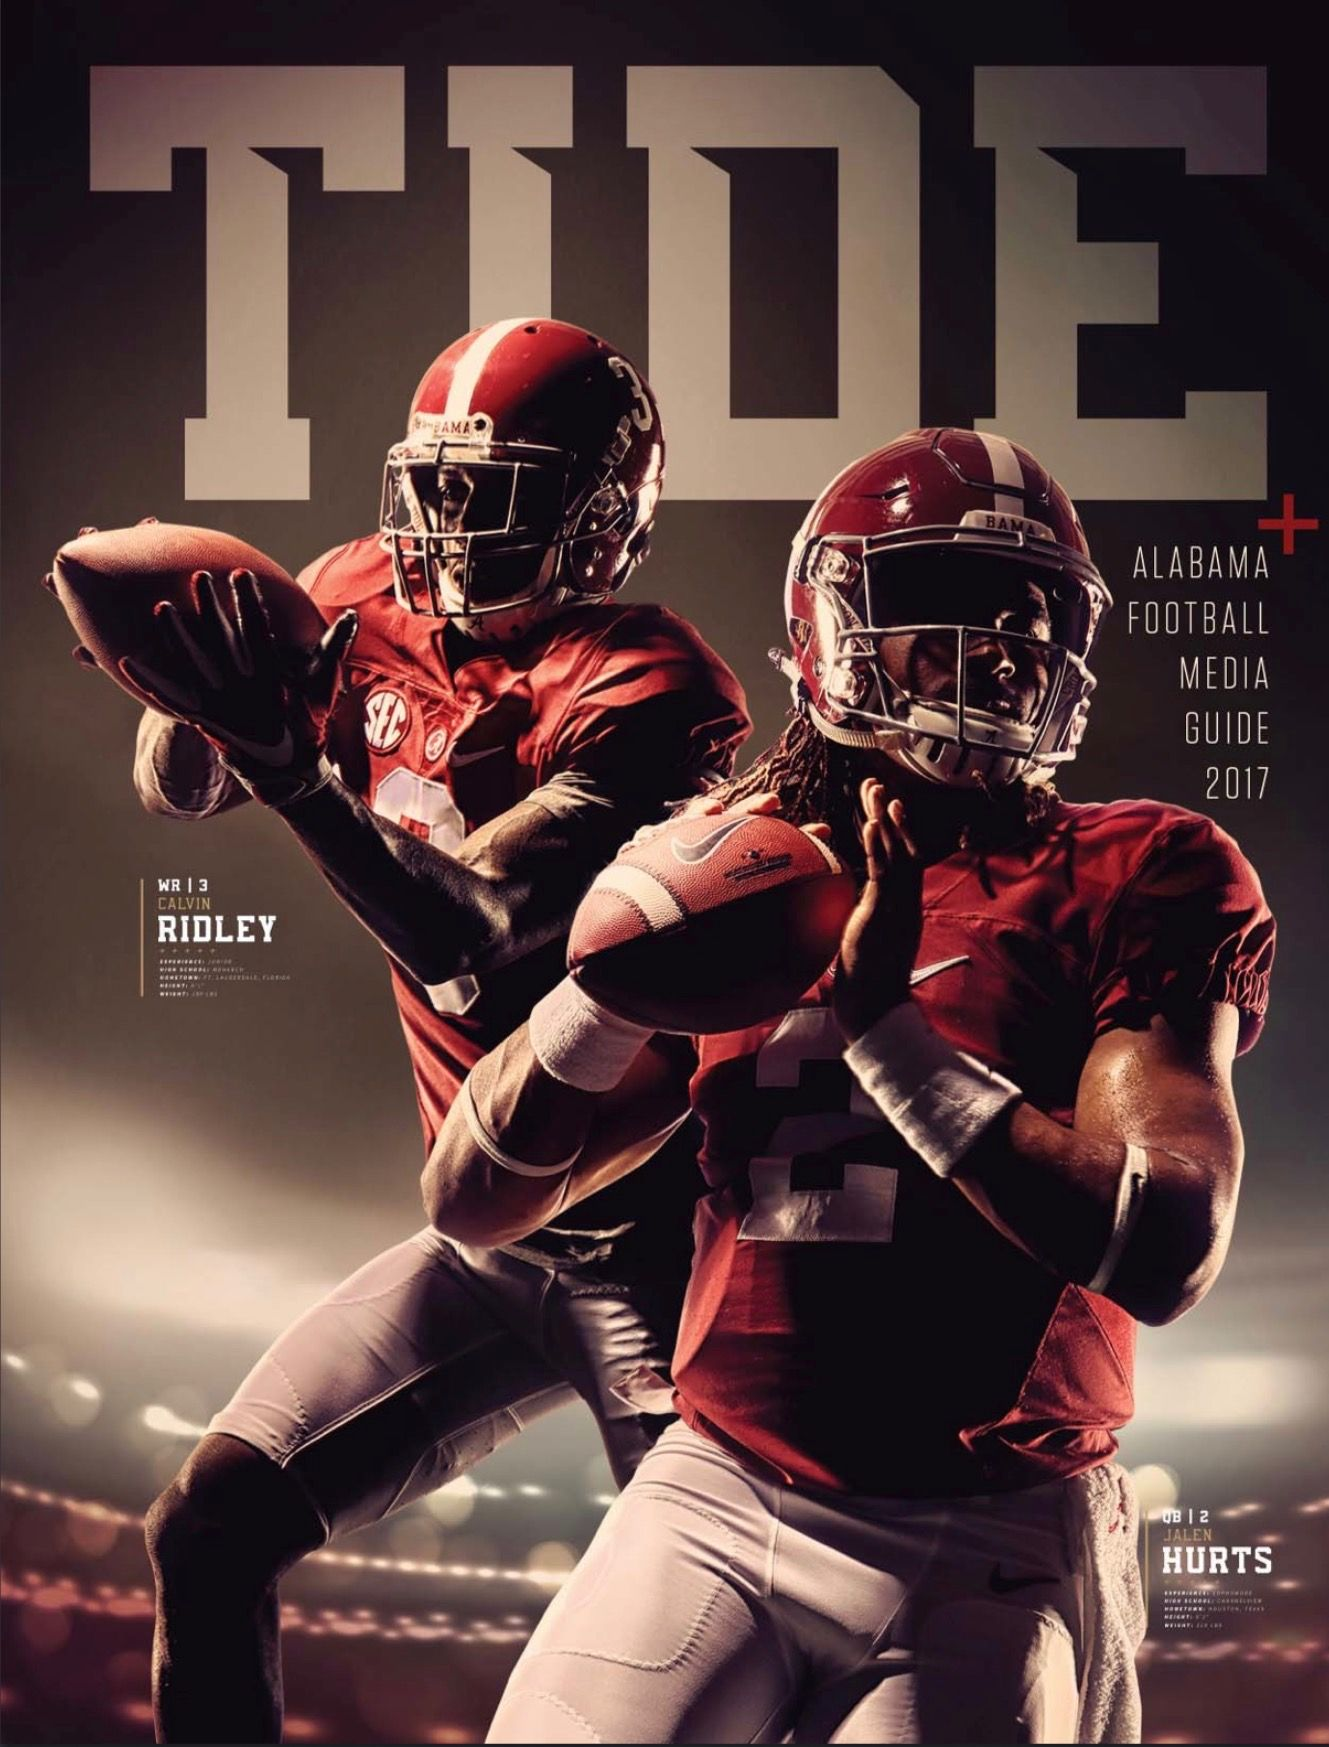 Alabama Football 2017 Media Guide Cover Calvin Ridley Jalen Hurts Alabama Rolltide Alabama Crimson Tide Football Crimson Tide Fans Alabama Crimson Tide